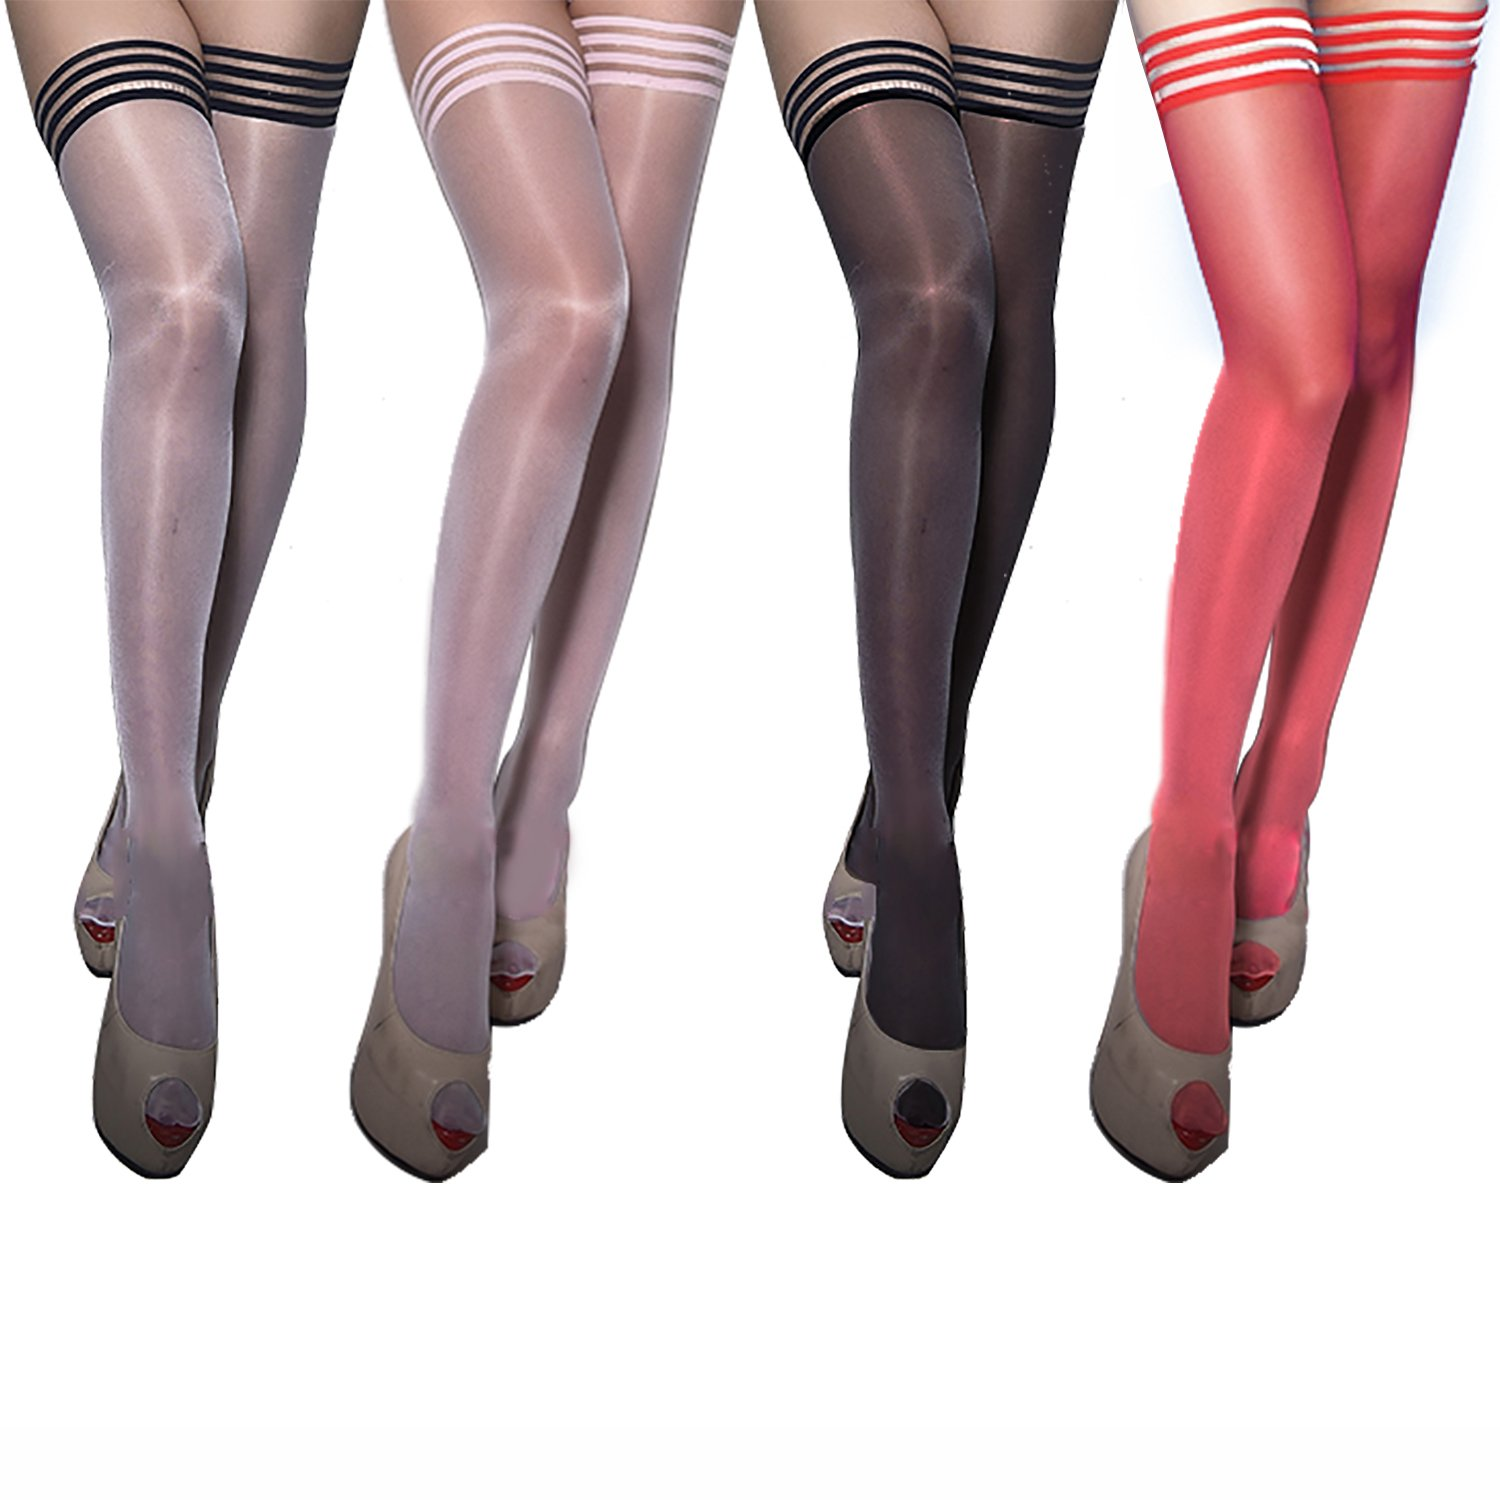 Women's Antiskid Silicone Lace Top Thigh High Silk Stockings (4 Pairs) Multicolor,One Size